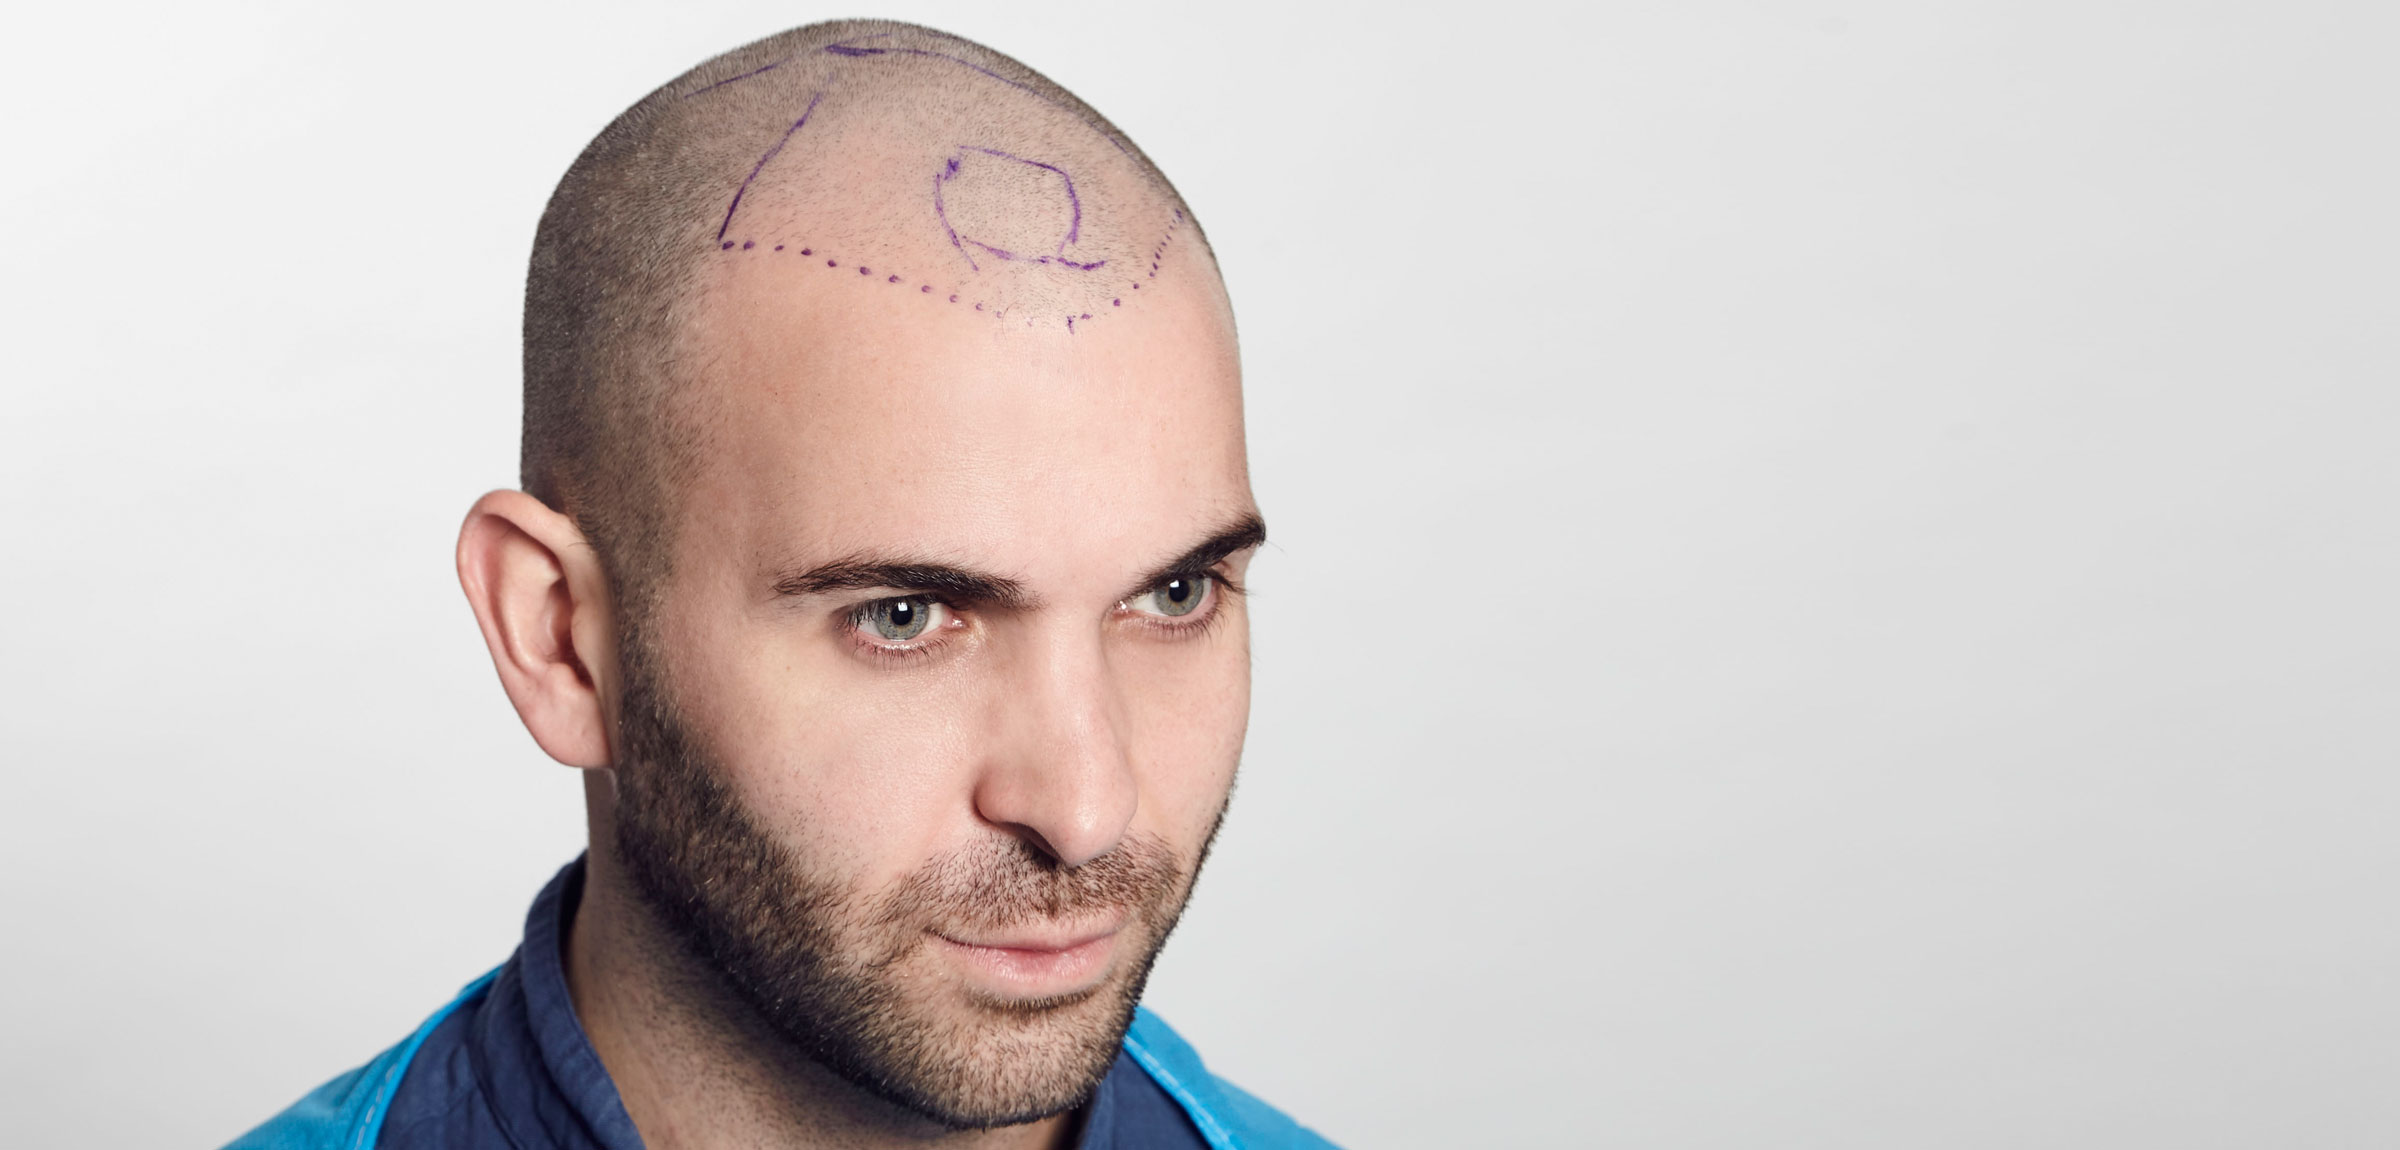 Man with Hair Transplant Mapped Out